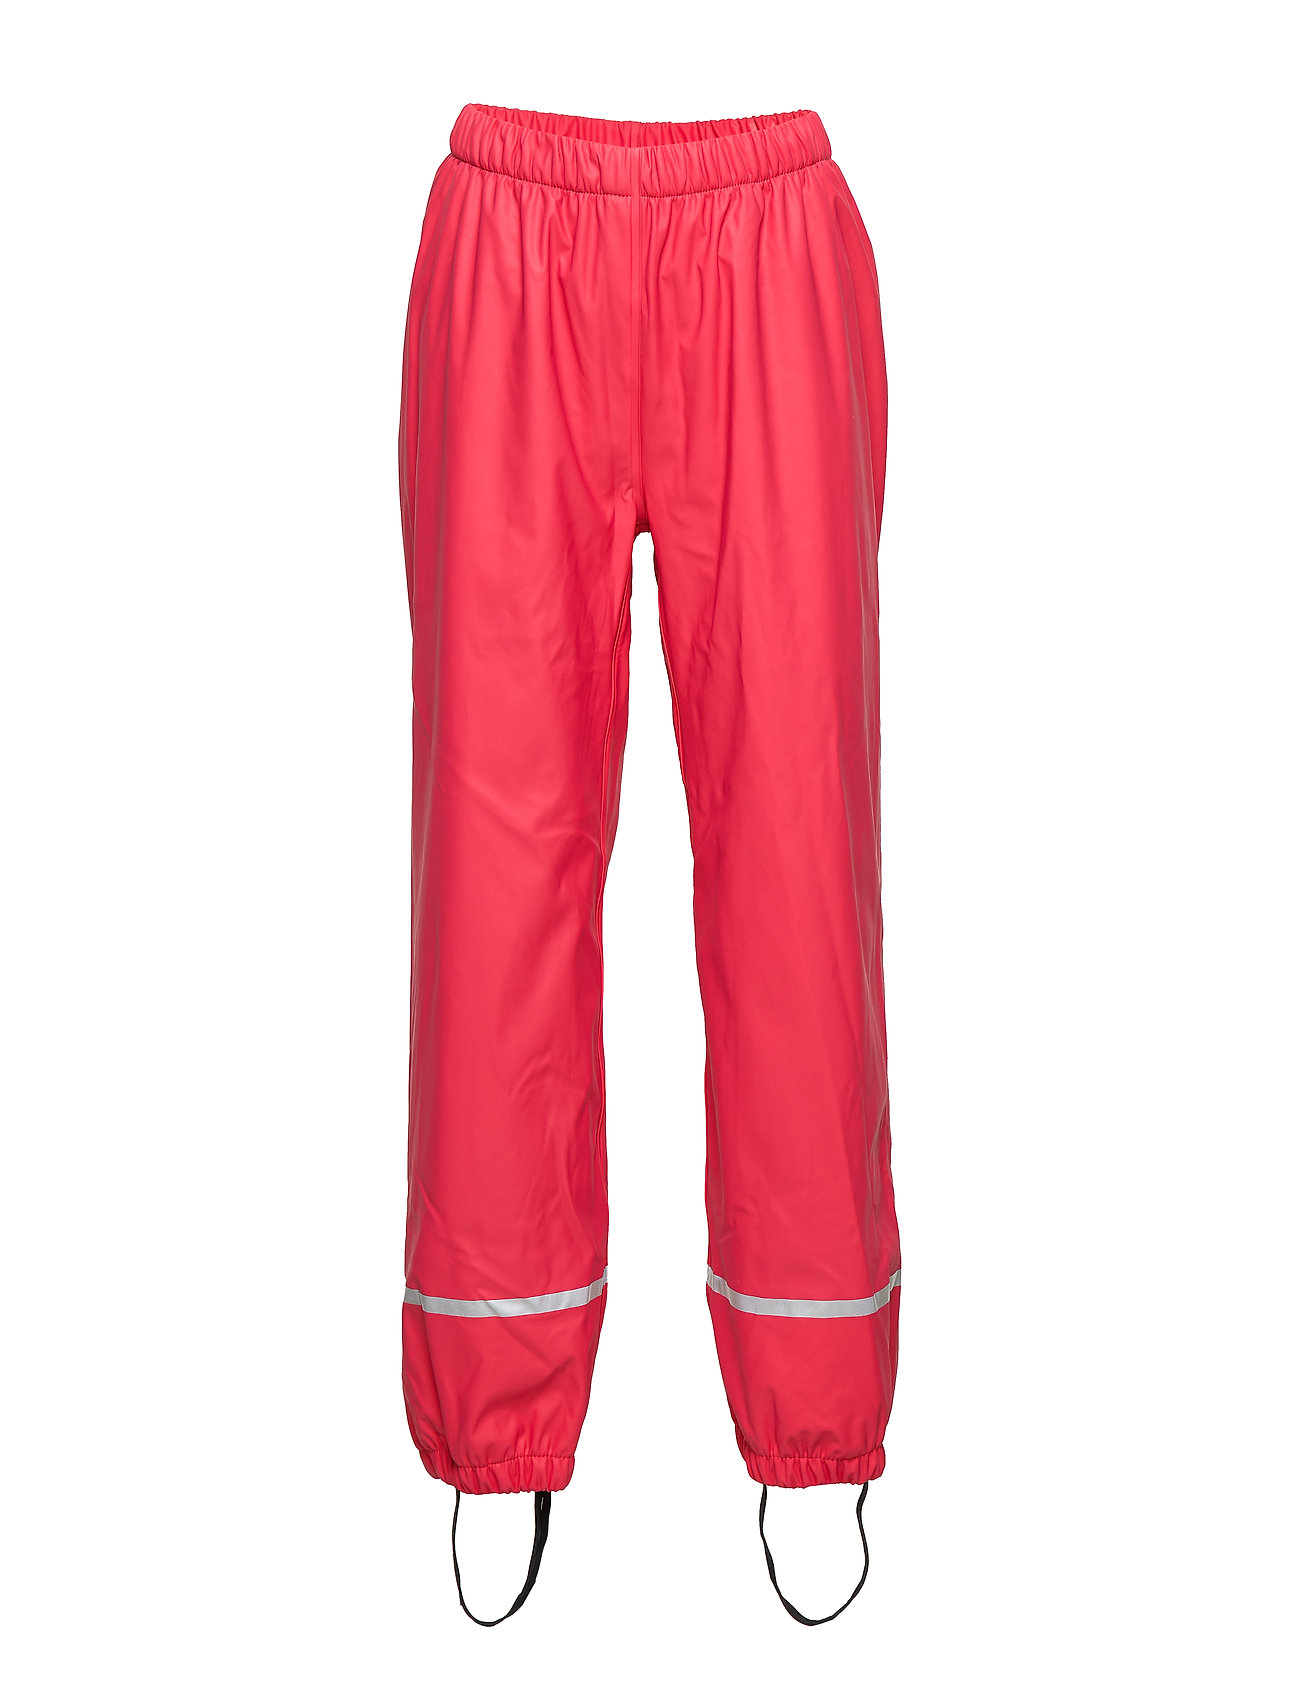 Lego wear LWPLATON 729 - RAIN PANTS - RED